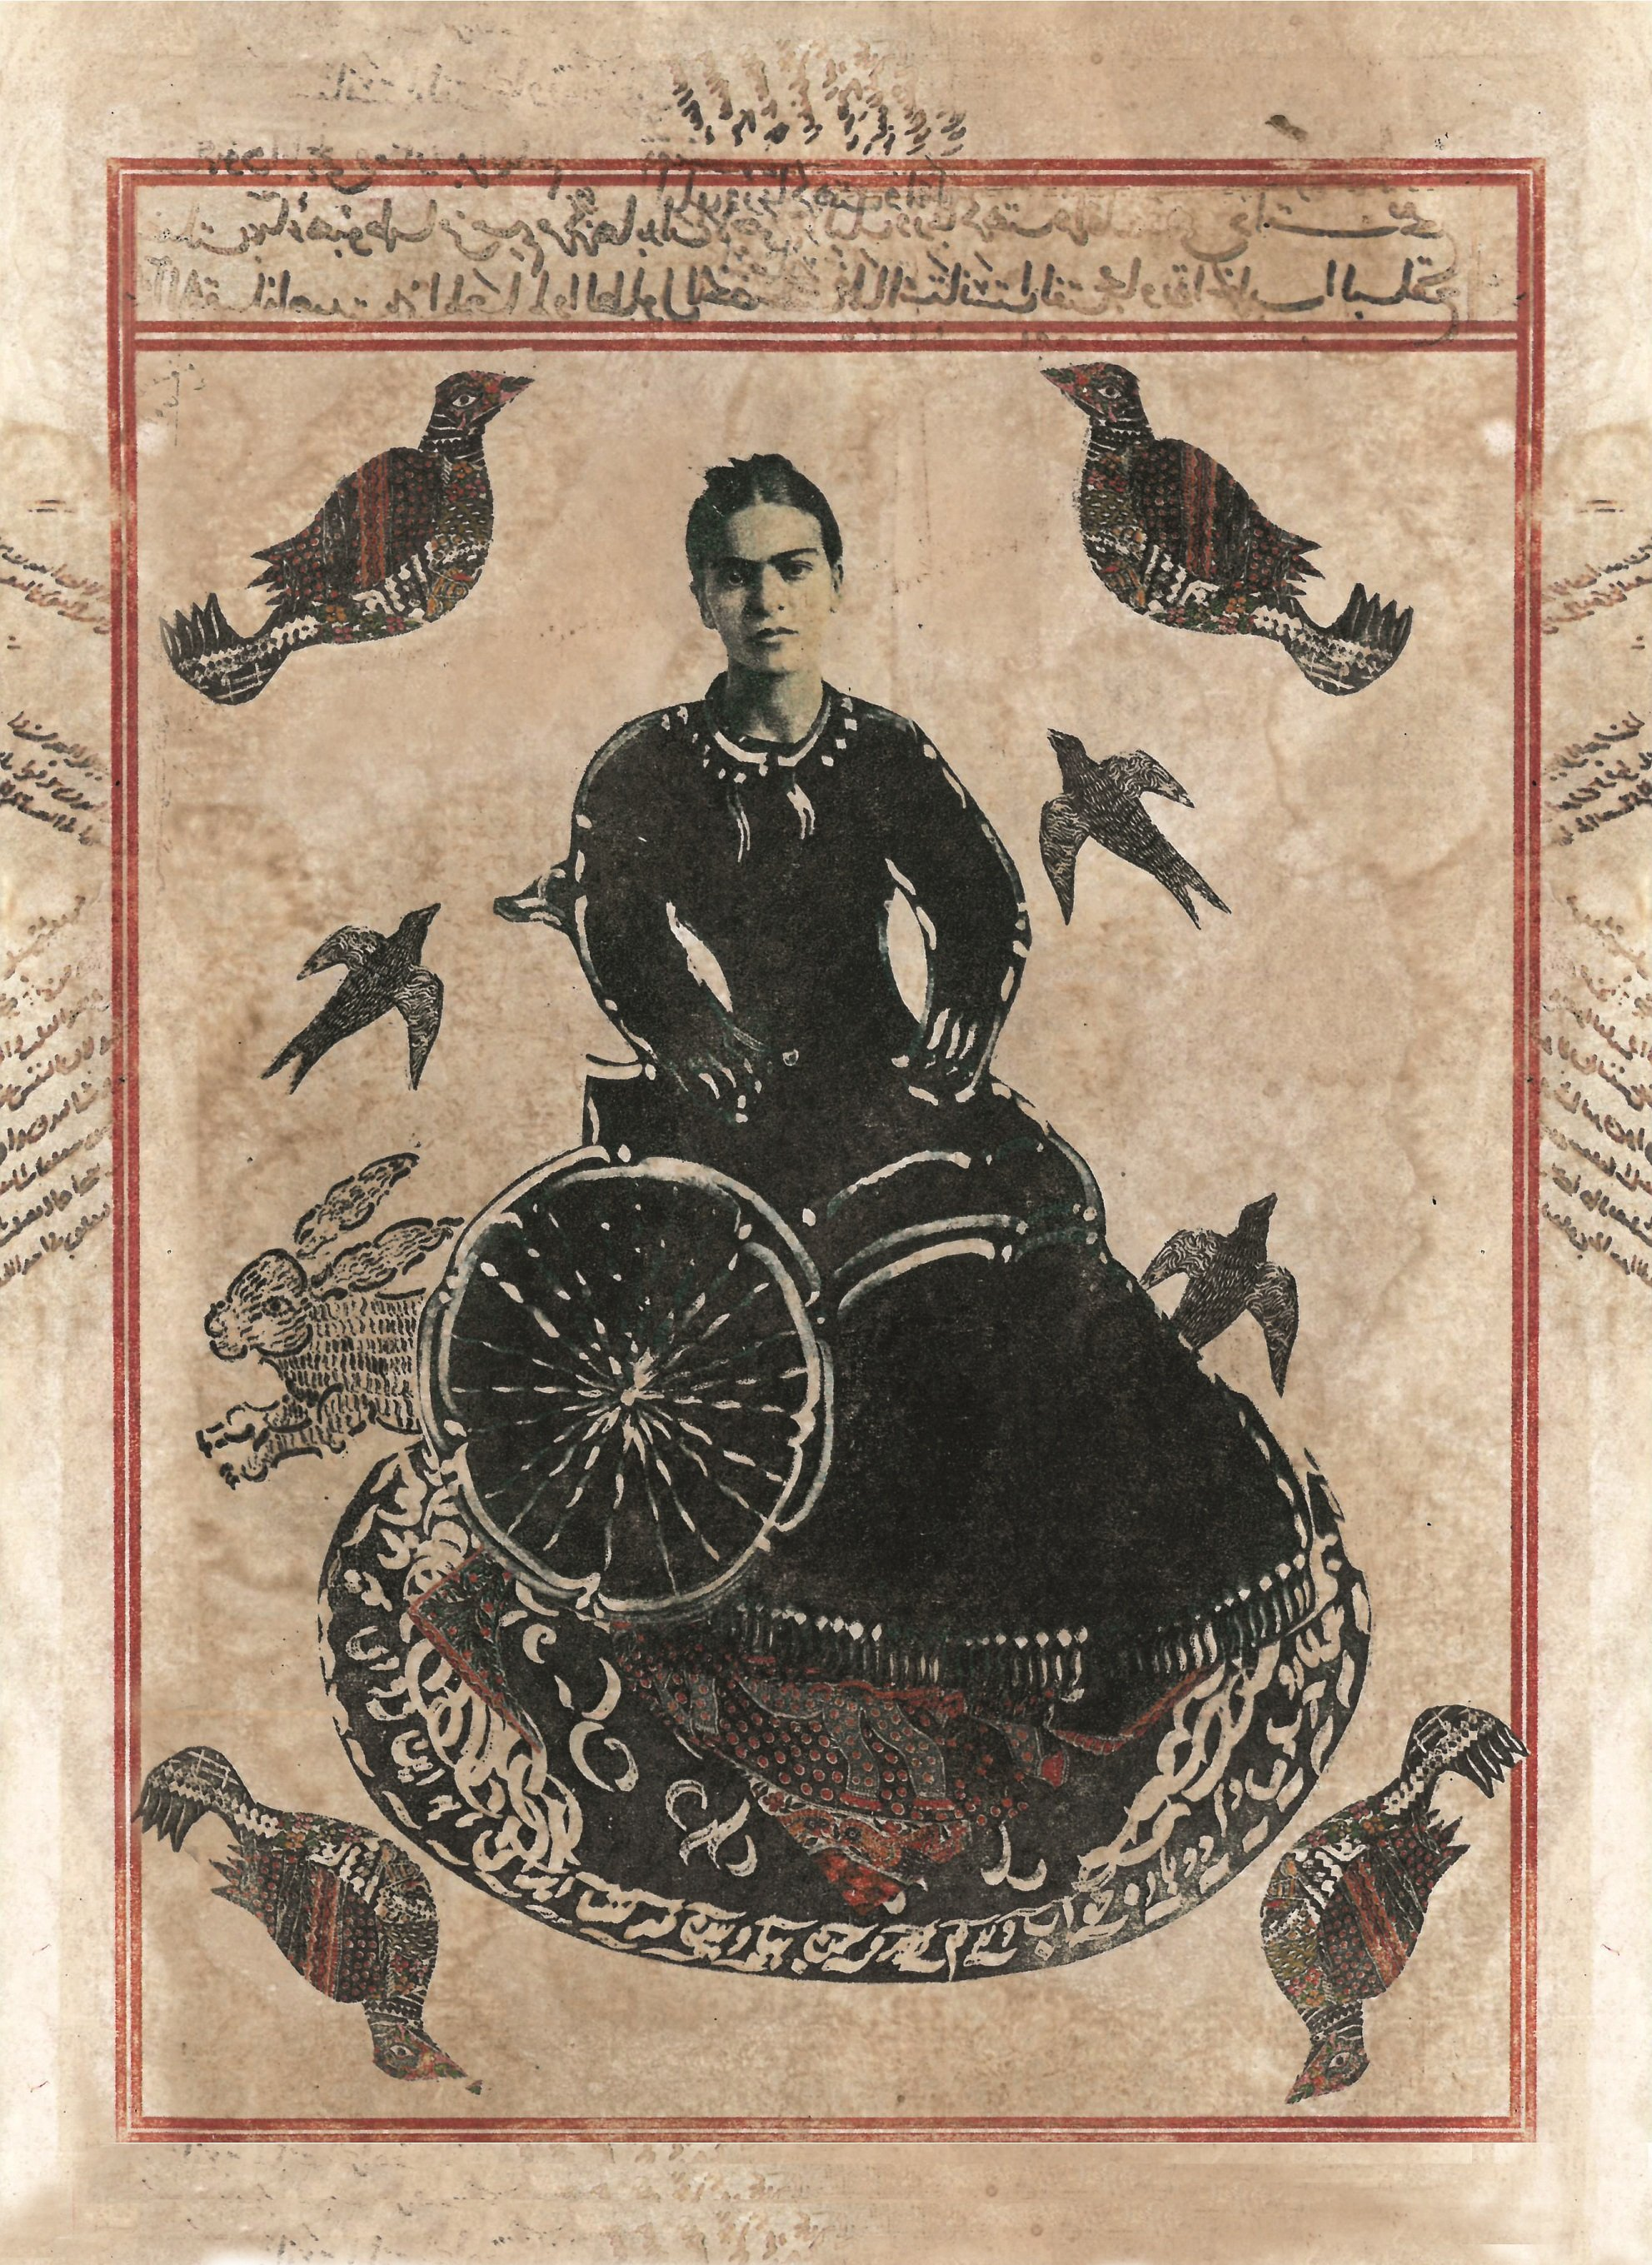 Black ink print of Frida Kahlo on paper dyed a mottled light brown, with red lines framing the image, black calligraphy in Arabic, and other abstract black and red bird images